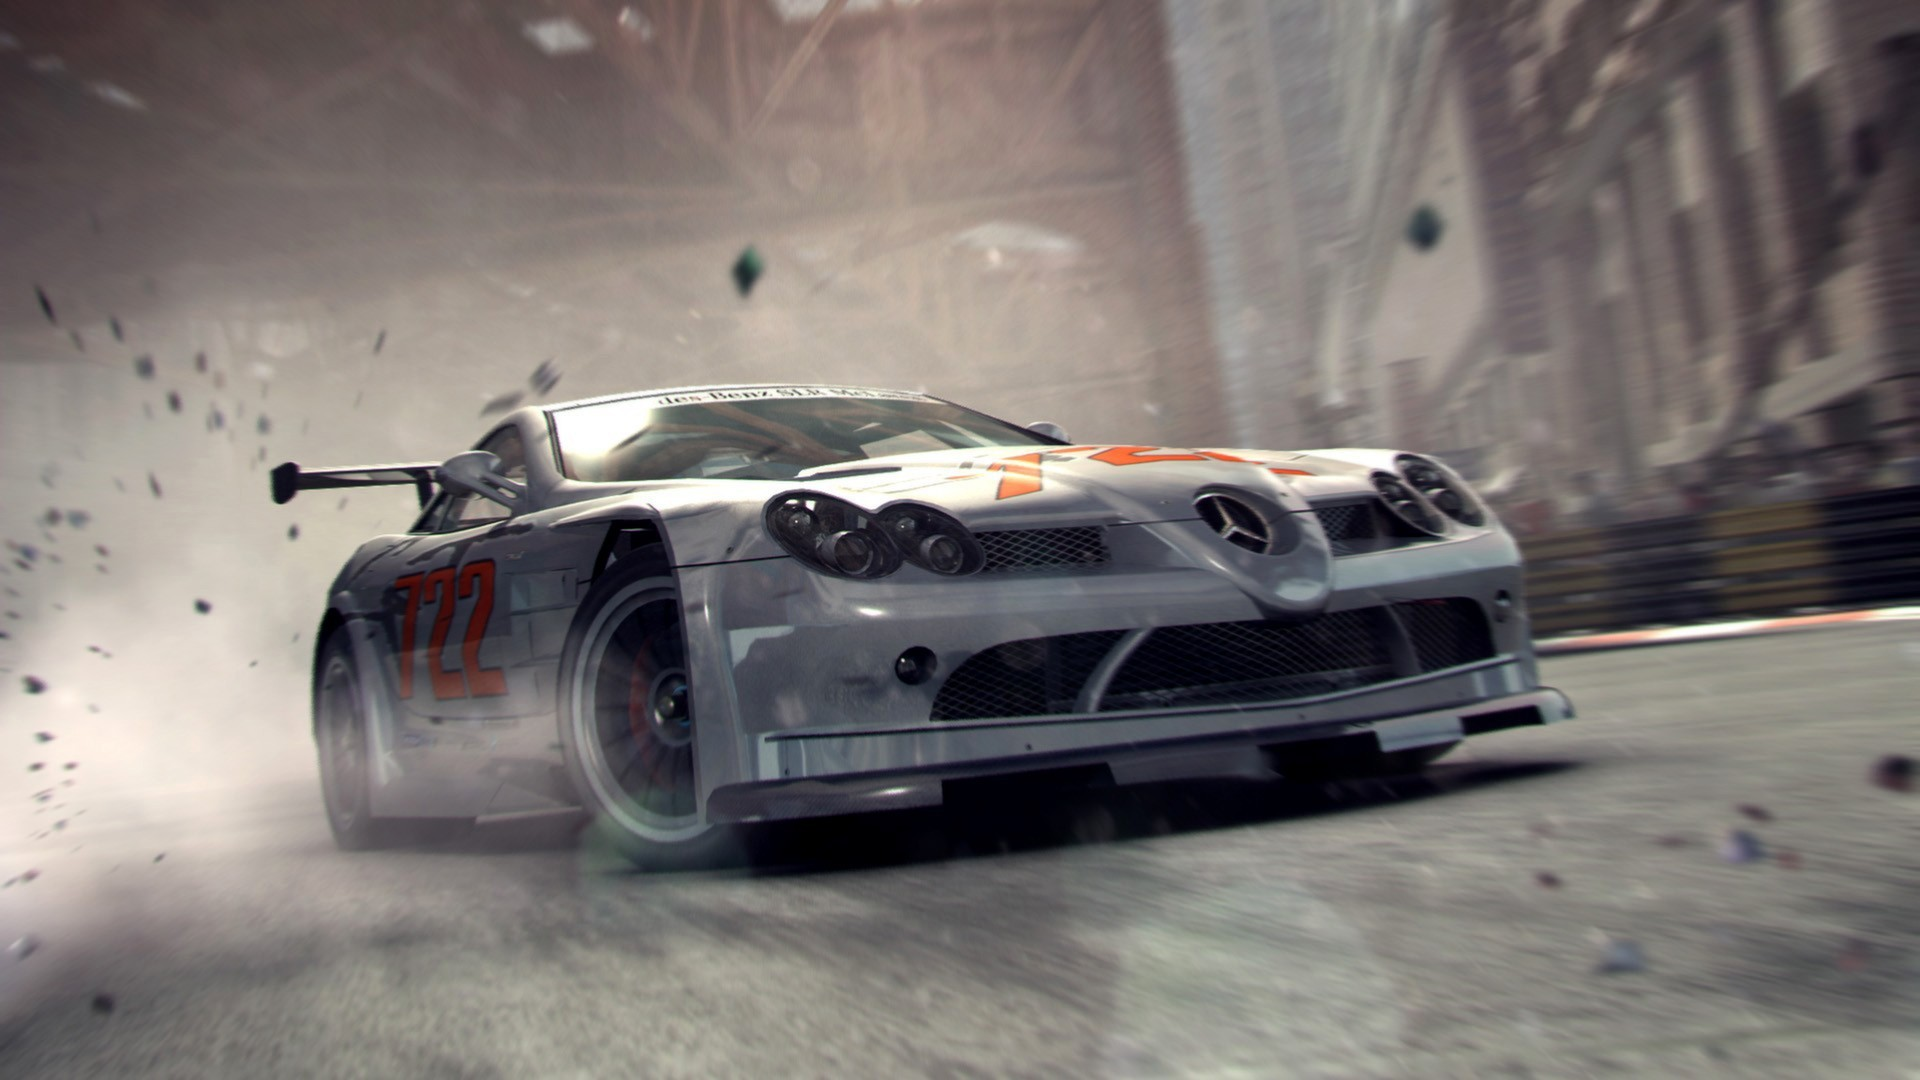 Racing Car Games Hd Wallpaper: Race-Driver-Grid-2 Full HD Wallpaper And Background Image